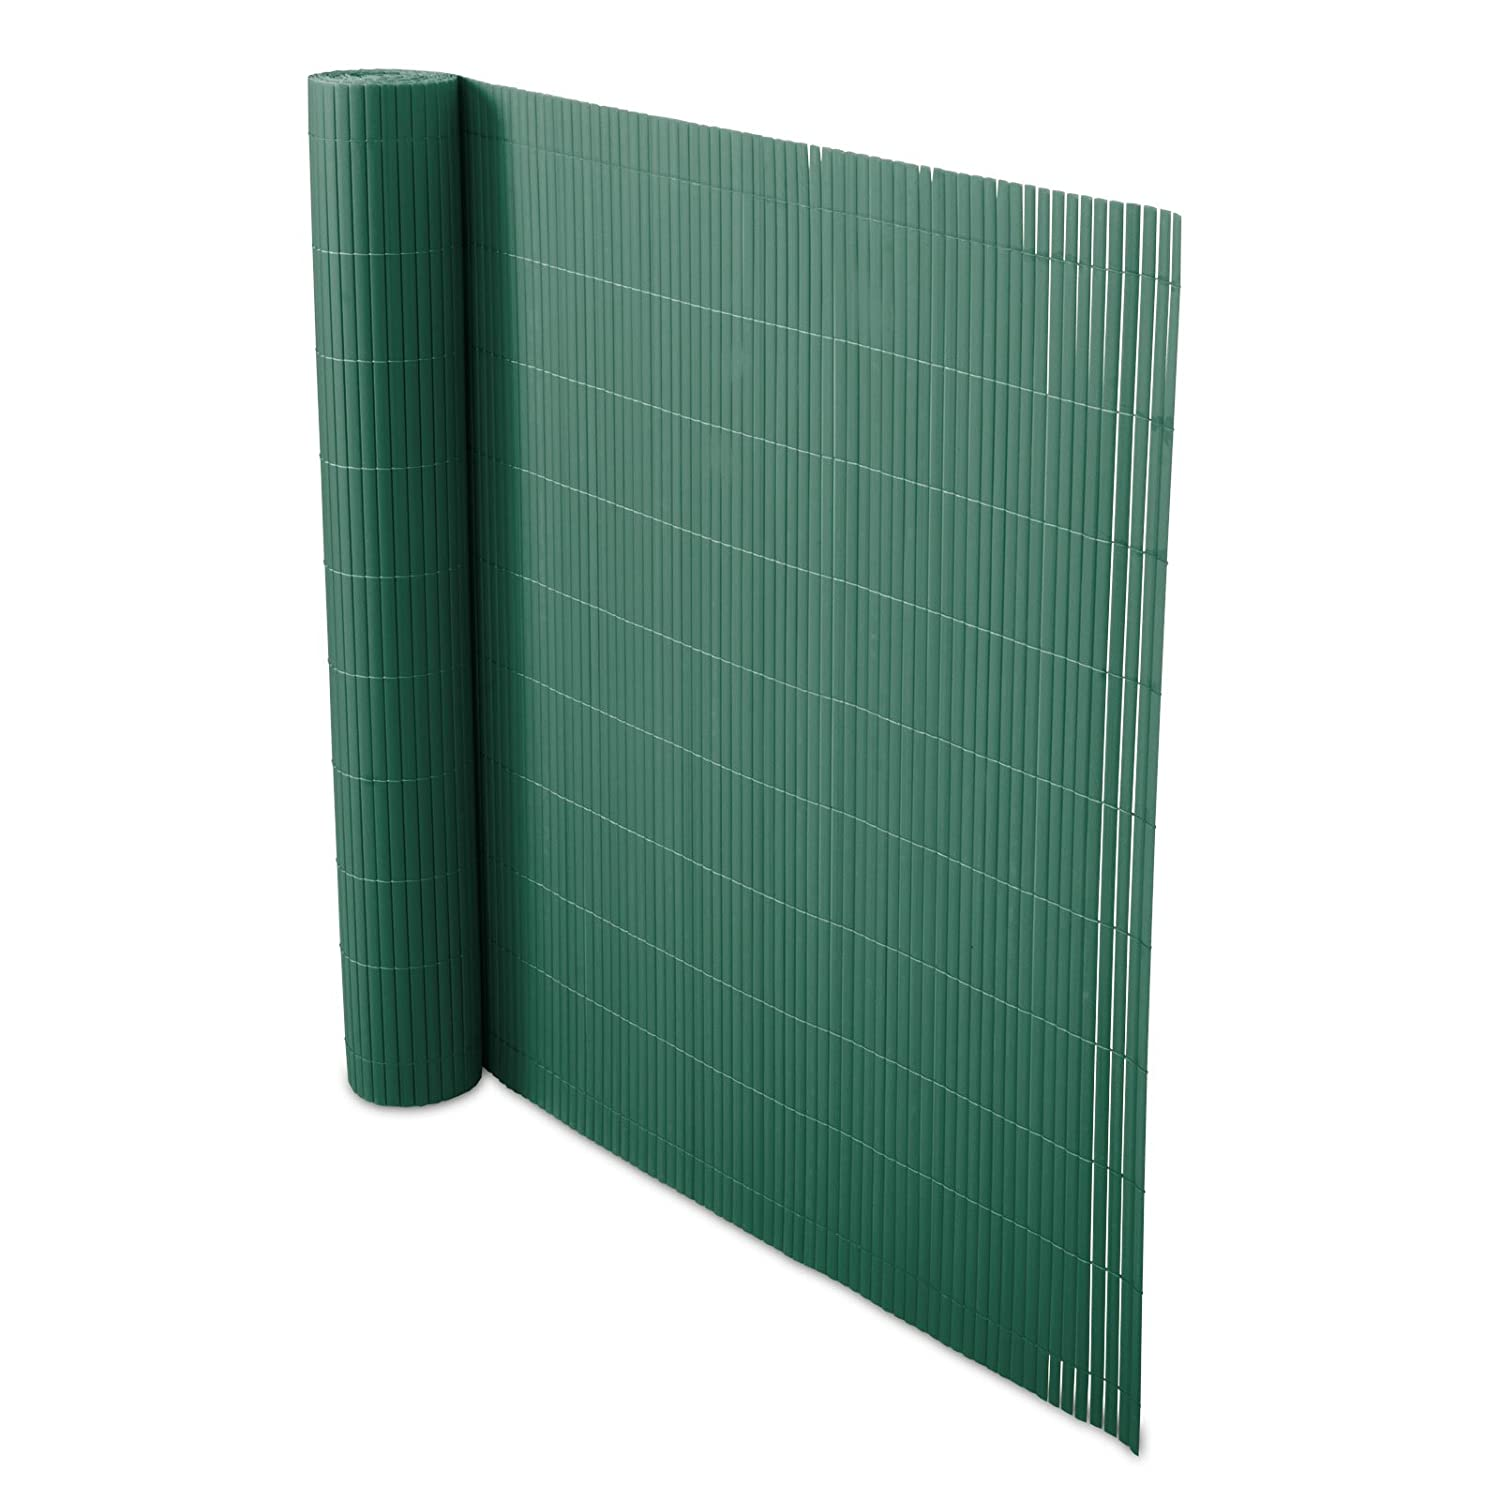 7 Sizes Available 150 x 500 cm Green casa pura PVC Garden Screen Fence Protective Screening Fence